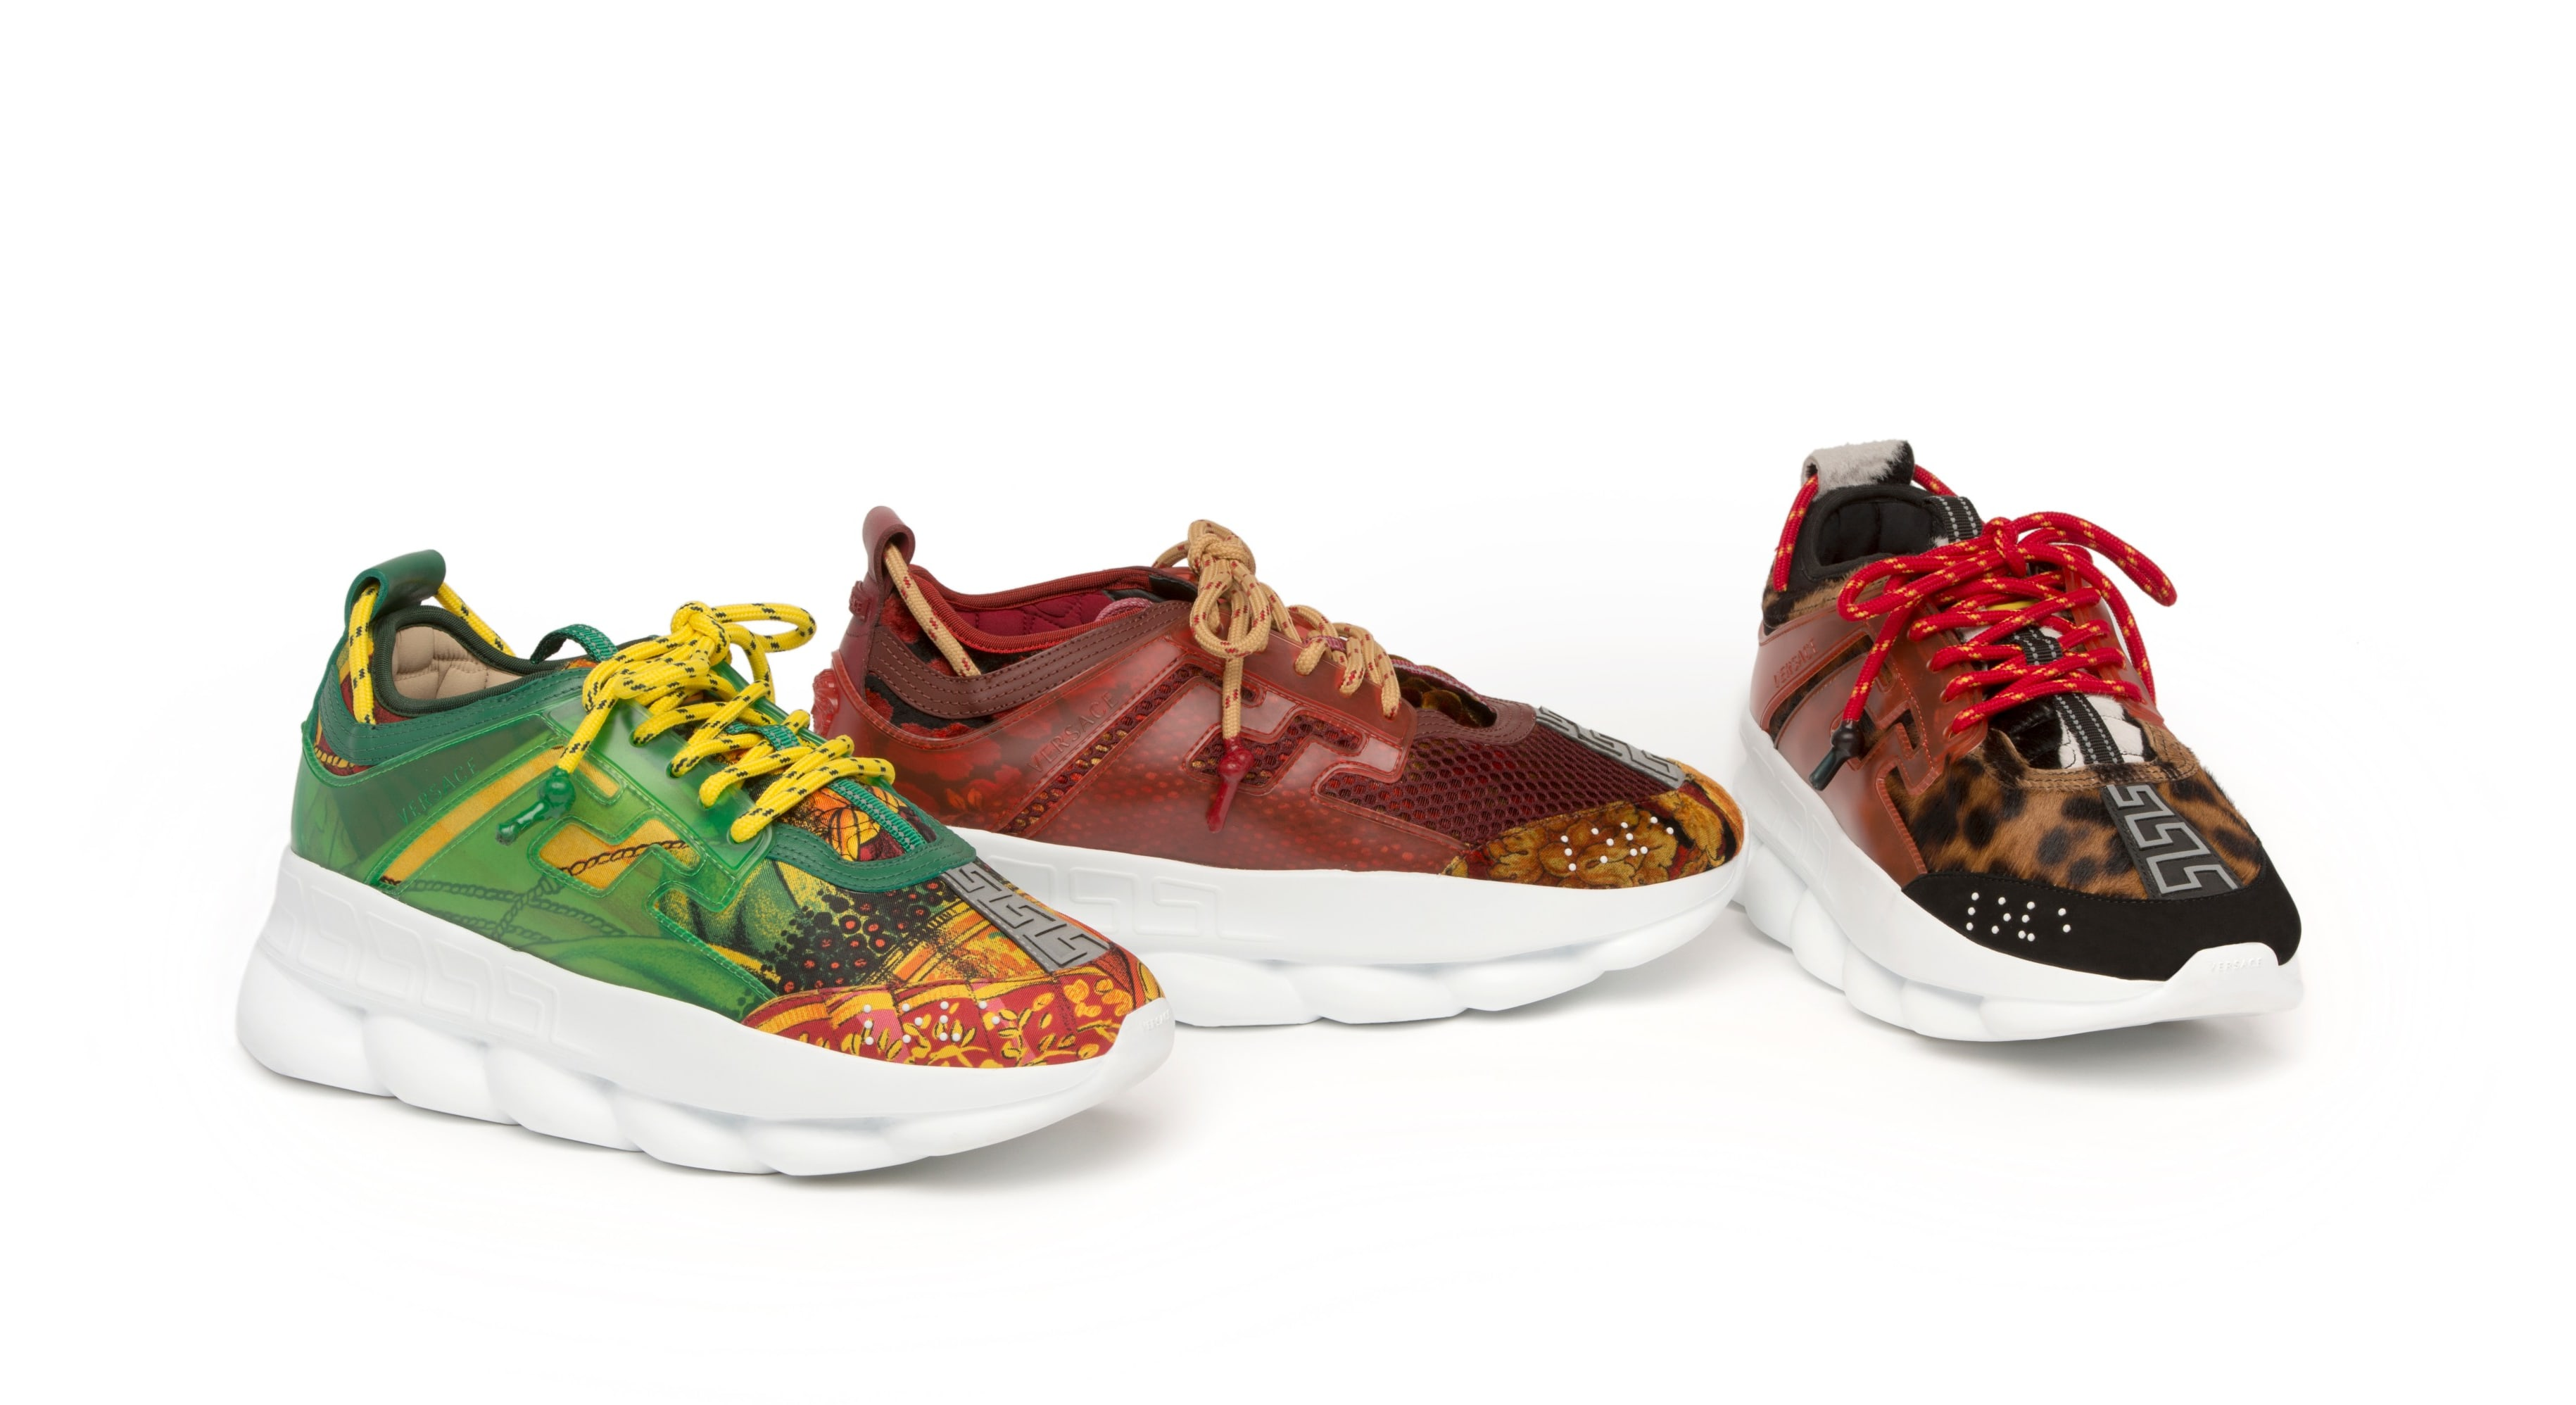 Versace Chain Reaction (Green, Maroon, Leopard)